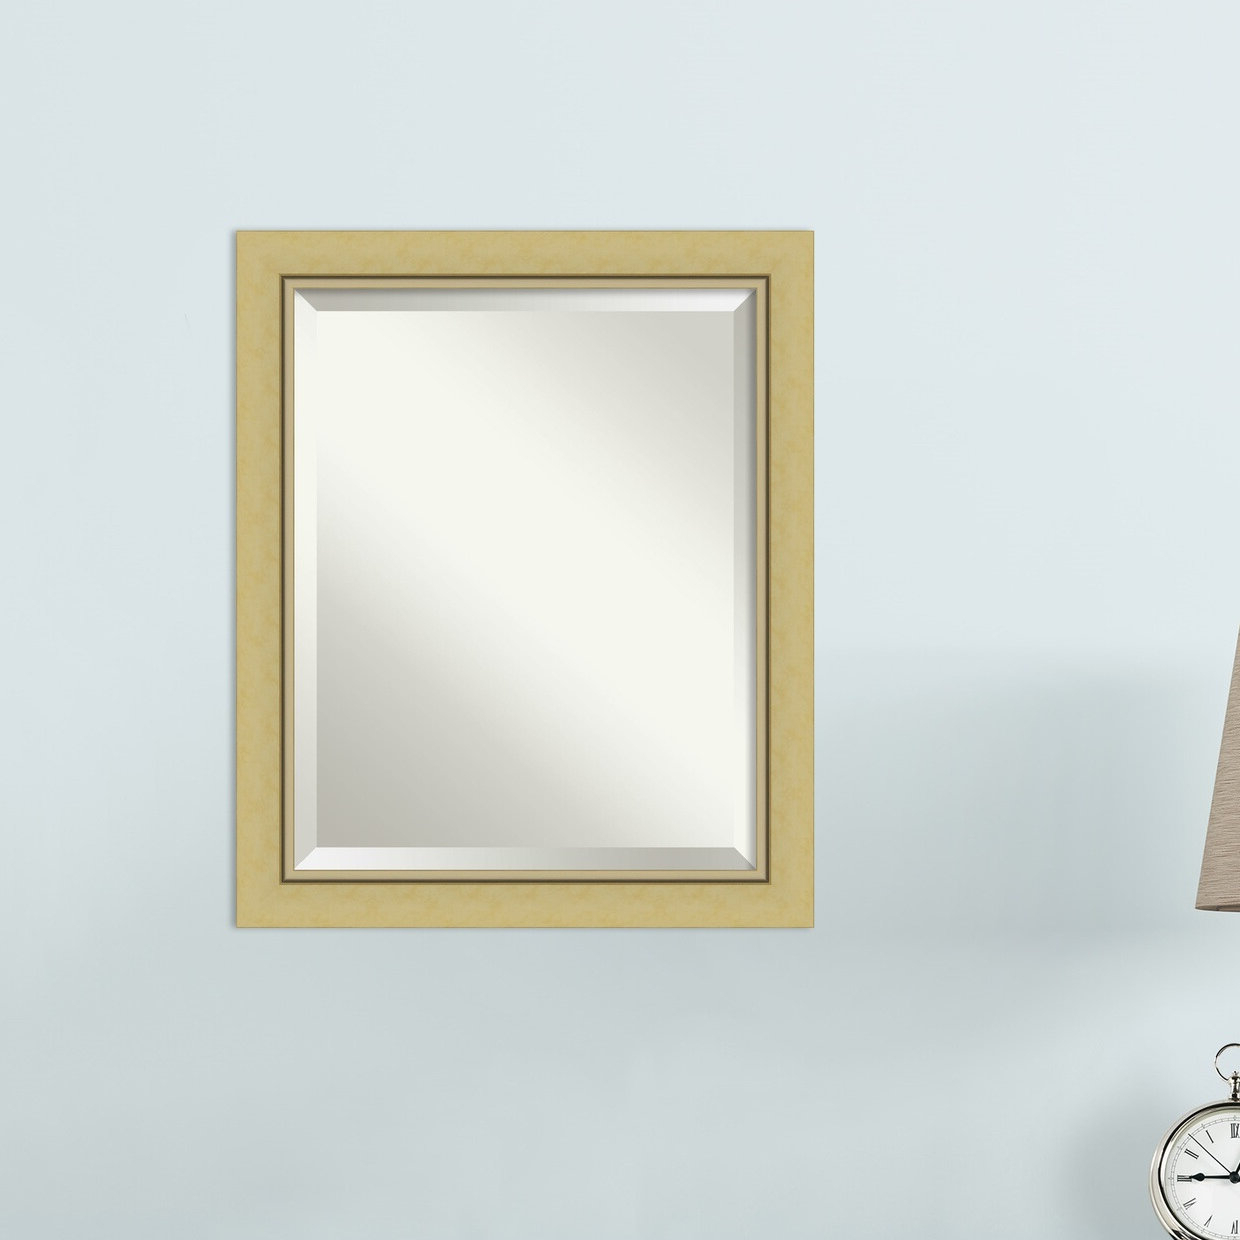 Narrow Wall Mirrors Regarding Widely Used Lachapelle Narrow Beveled Wall Mirror (Gallery 15 of 20)